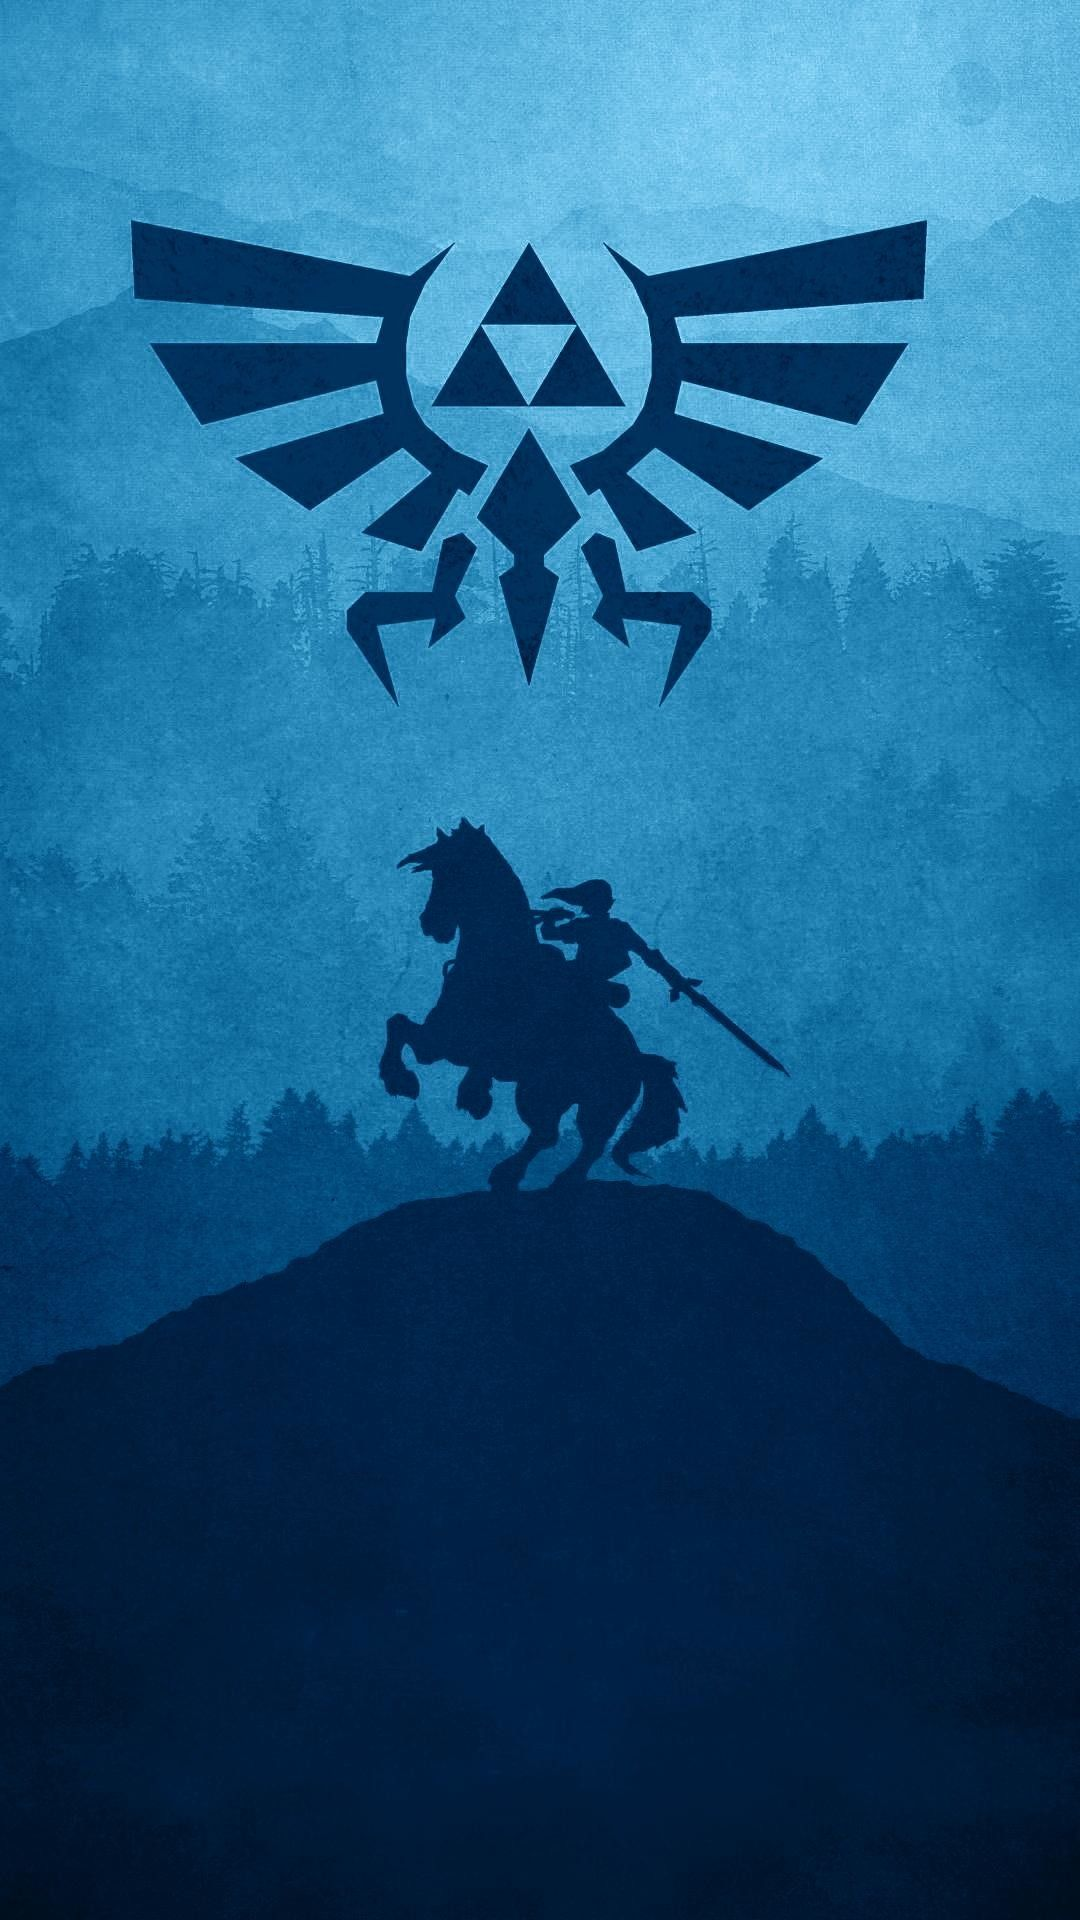 1080x1920 Iphone The Legend Of Zelda Wallpapers Hd Desktop Backgrounds Iphone Wallpaper Zelda Zelda Hd Skyrim Wallpaper